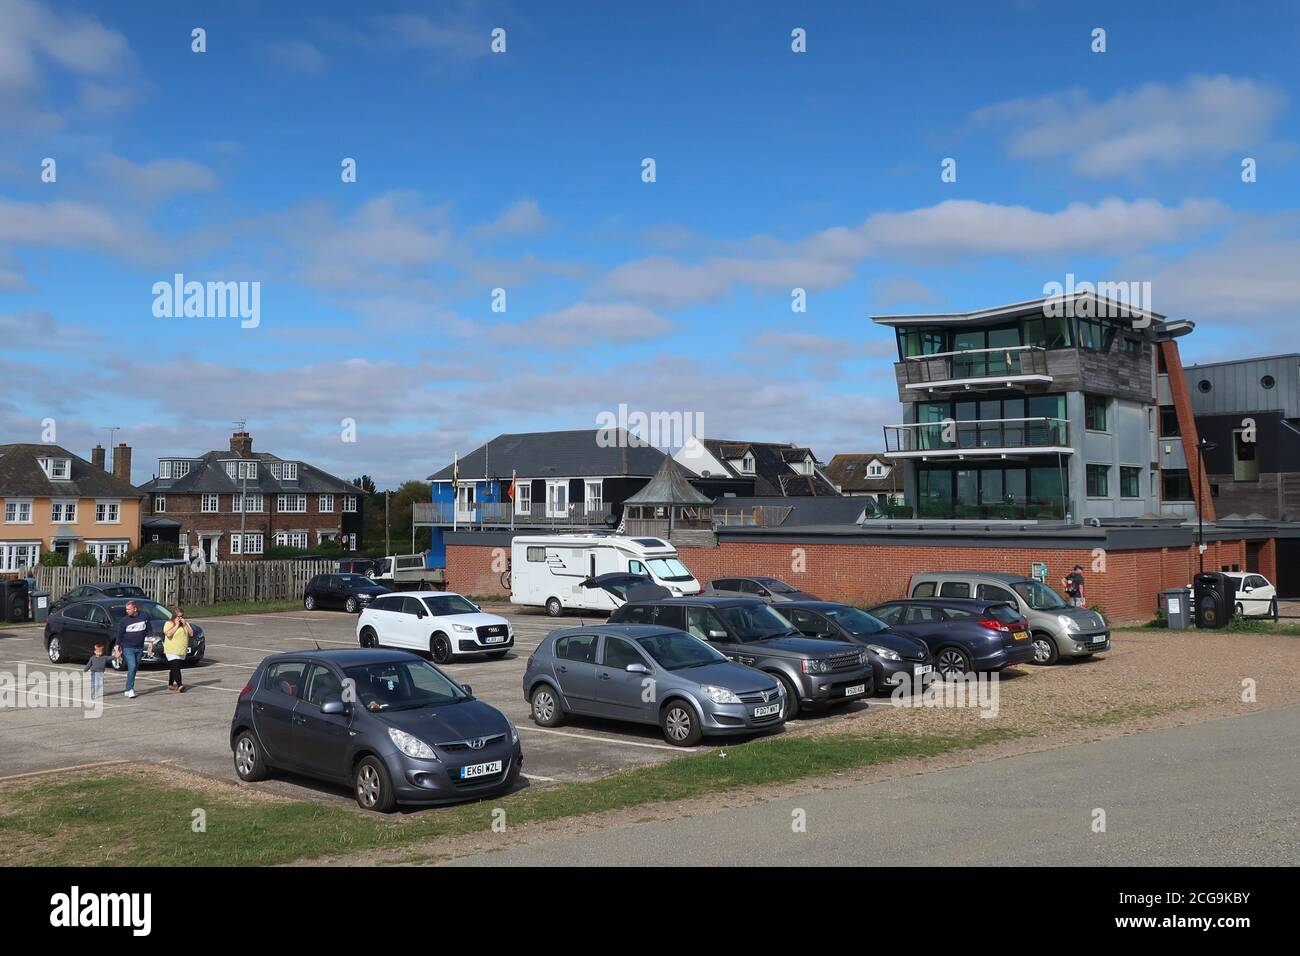 Aldeburgh, Suffolk, UK - 9 September 2020: Bright autumn day on the East Anglia coast. Fort Green car park on the seafront. Stock Photo